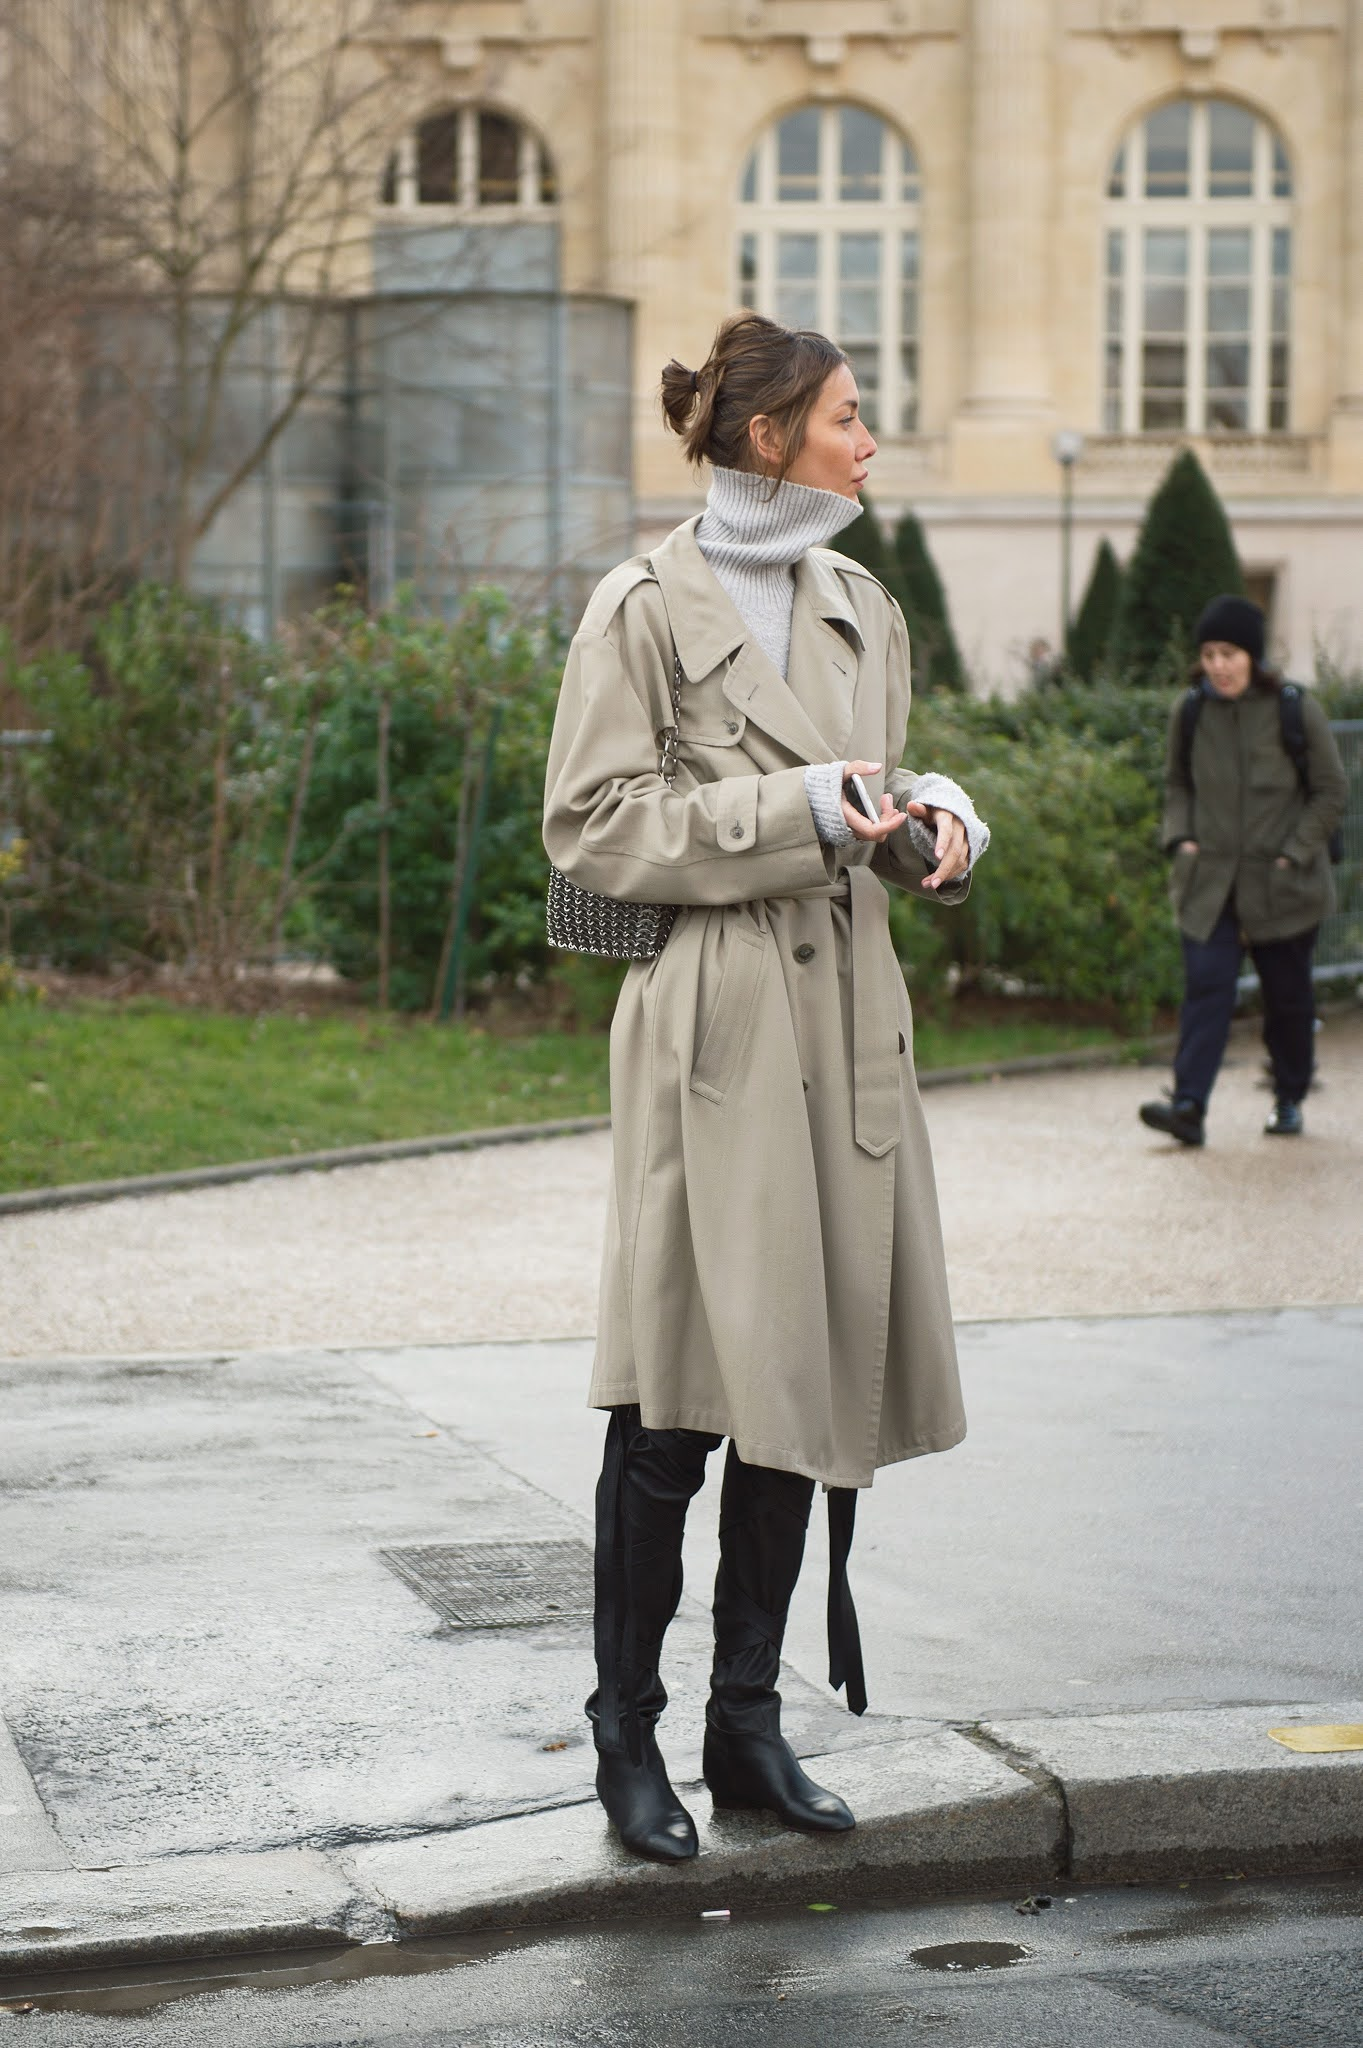 This Incredibly Stylish Fall Outfit Is Super Easy to Recreate —Juli Pelipas street style outfit with a trench coat, gray turtleneck sweater, metal bag, and black over-the-knee boots